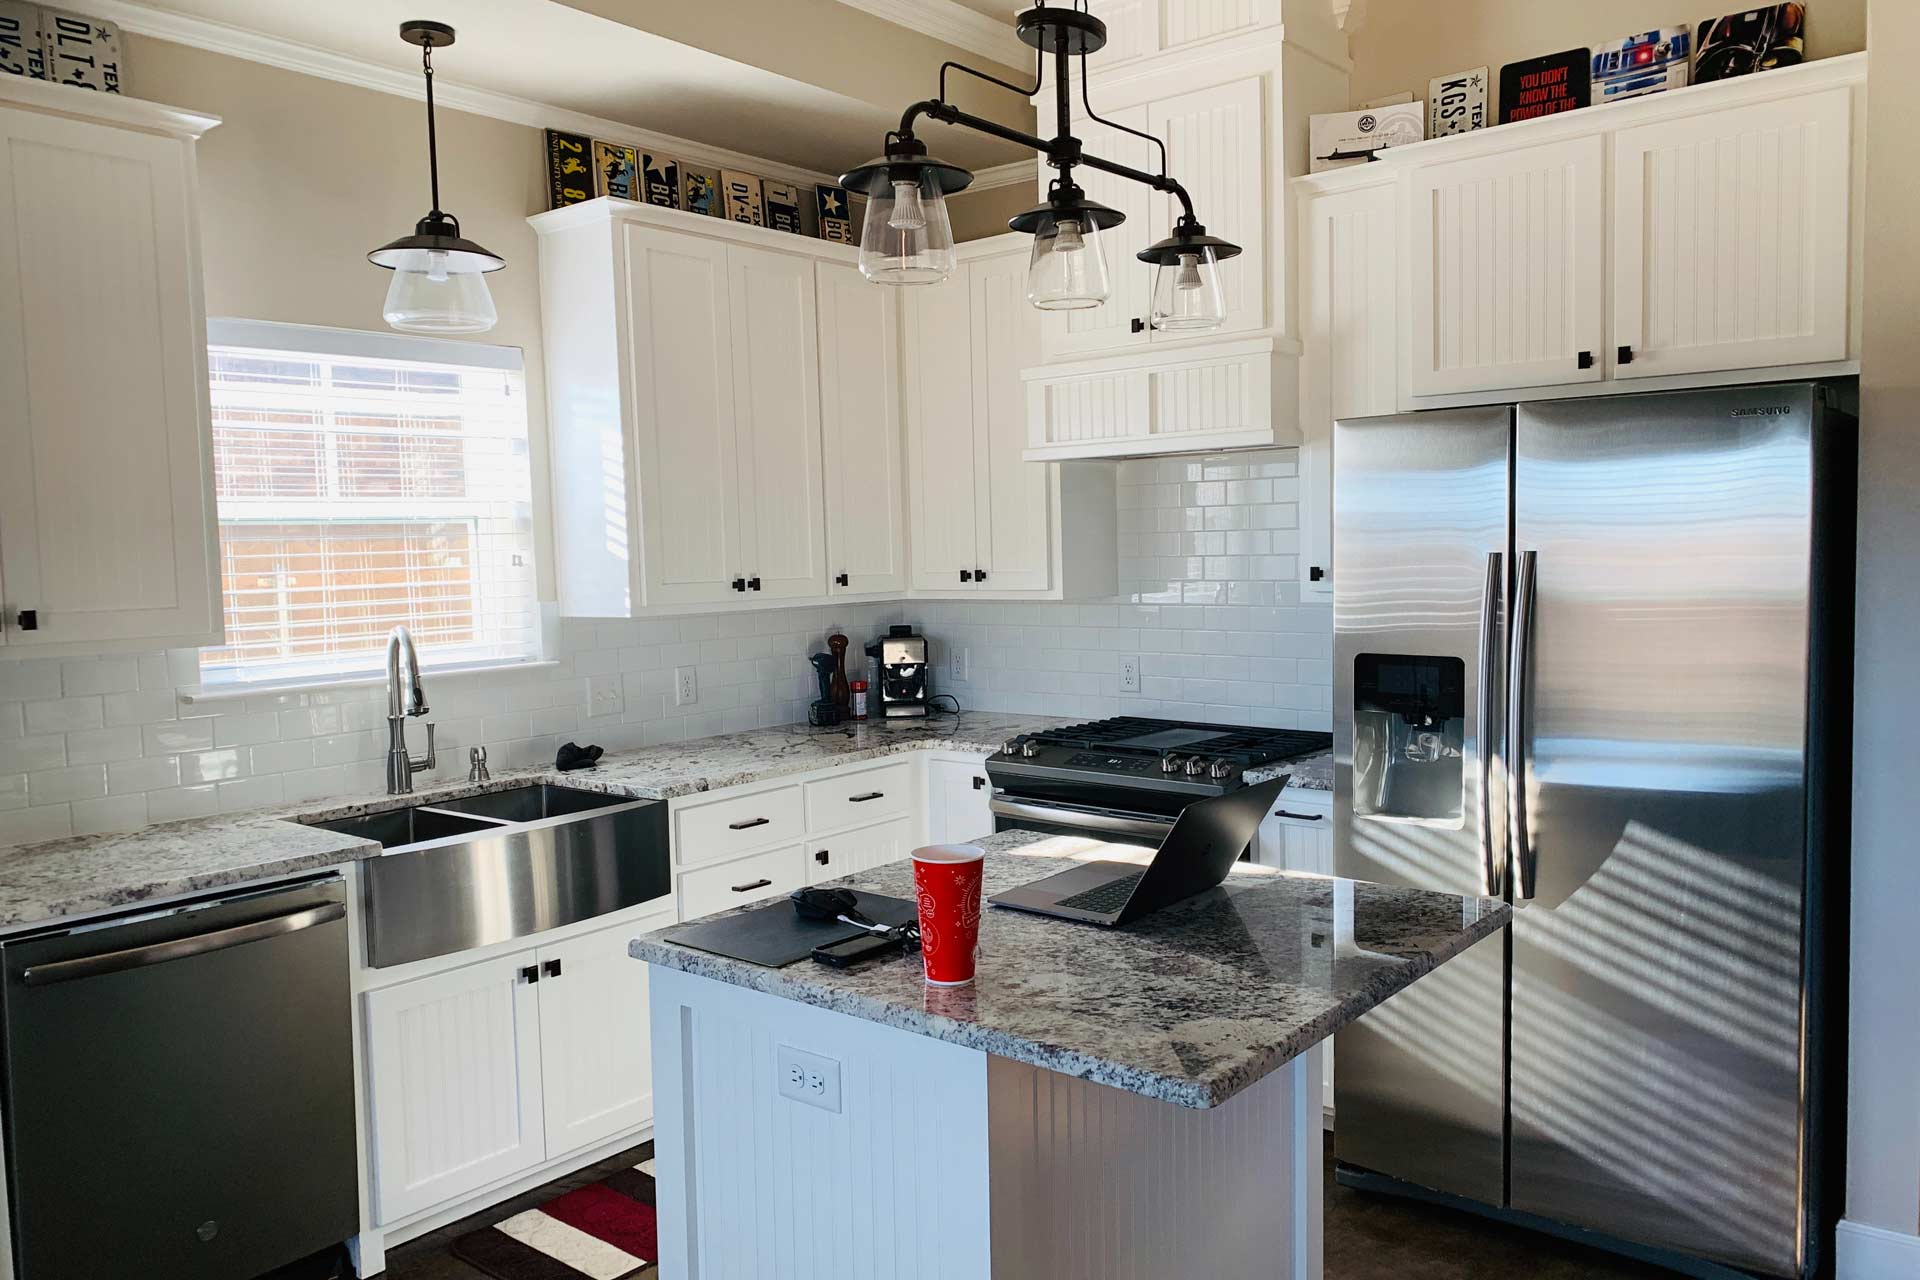 How Do You Update a Small Condo?